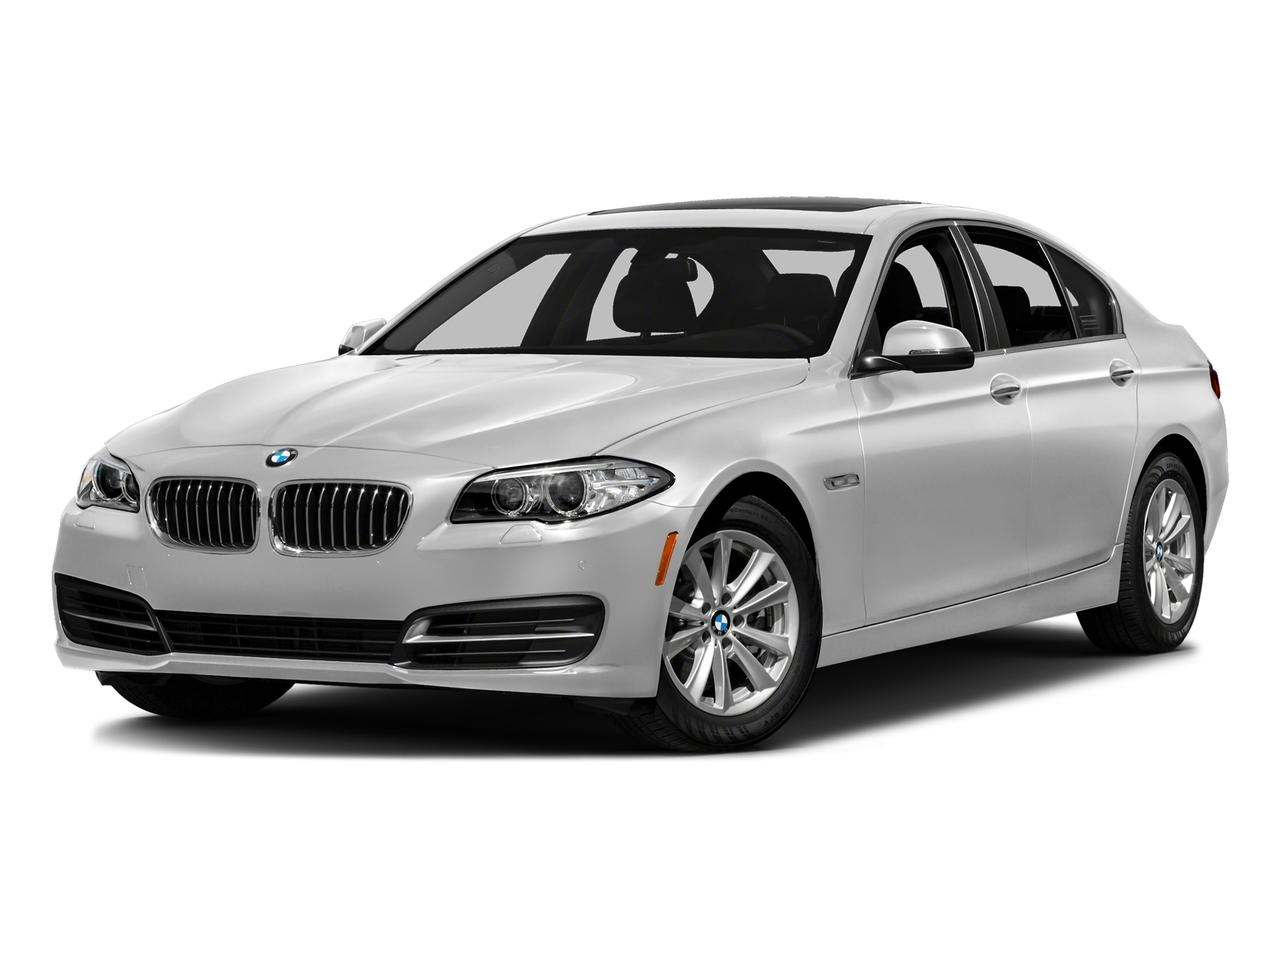 2016 BMW 528i Vehicle Photo in Pleasanton, CA 94588